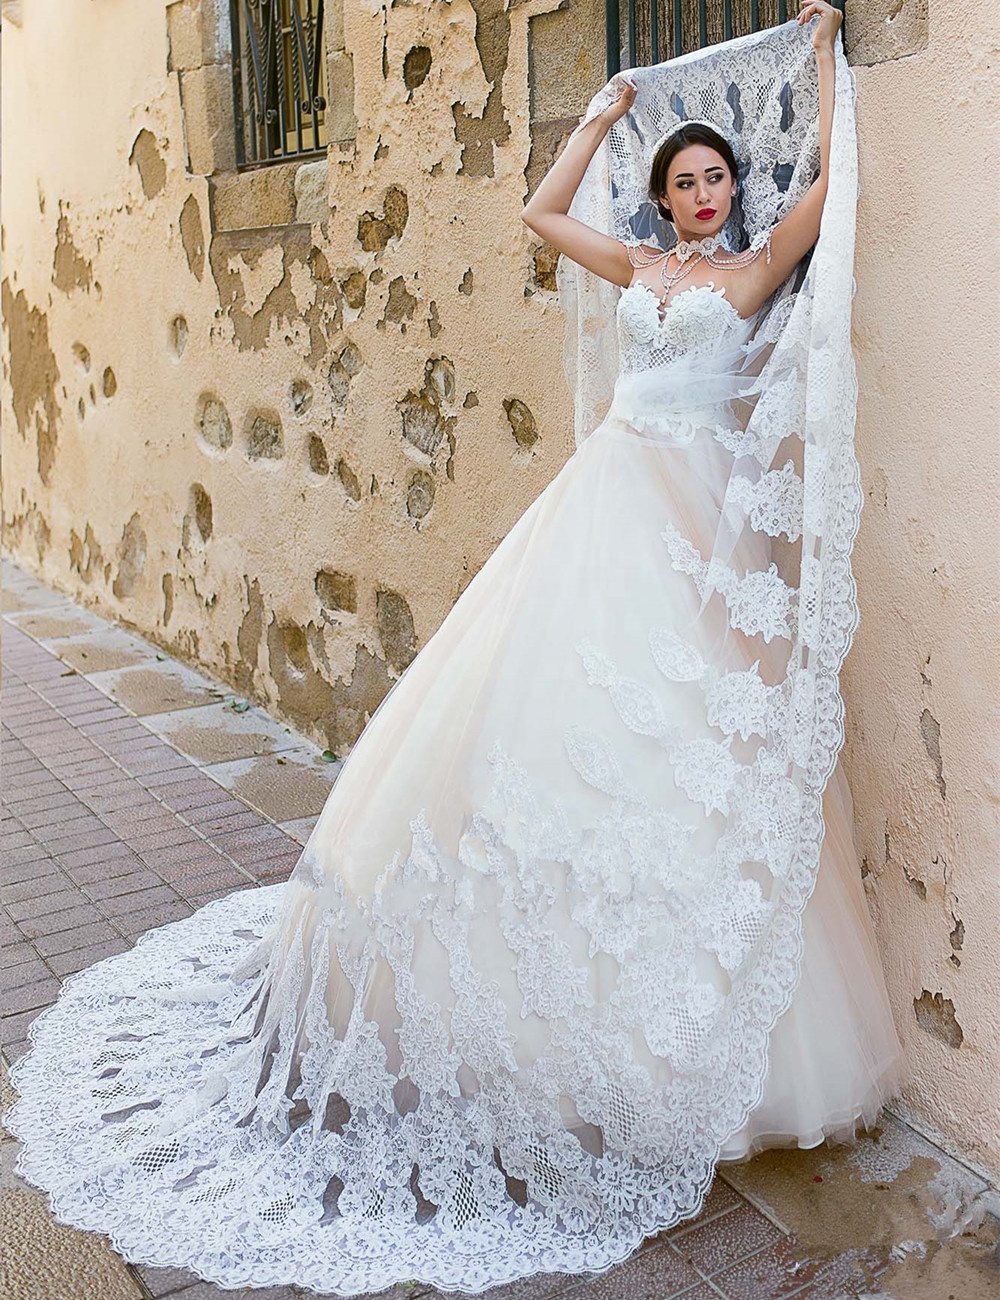 Ball Gown Wedding Dresses 2019 Africa Wedding Gowns Muslim Bridal Wedding Dresses White Lace Bridal Gowns Vestido de novia A261